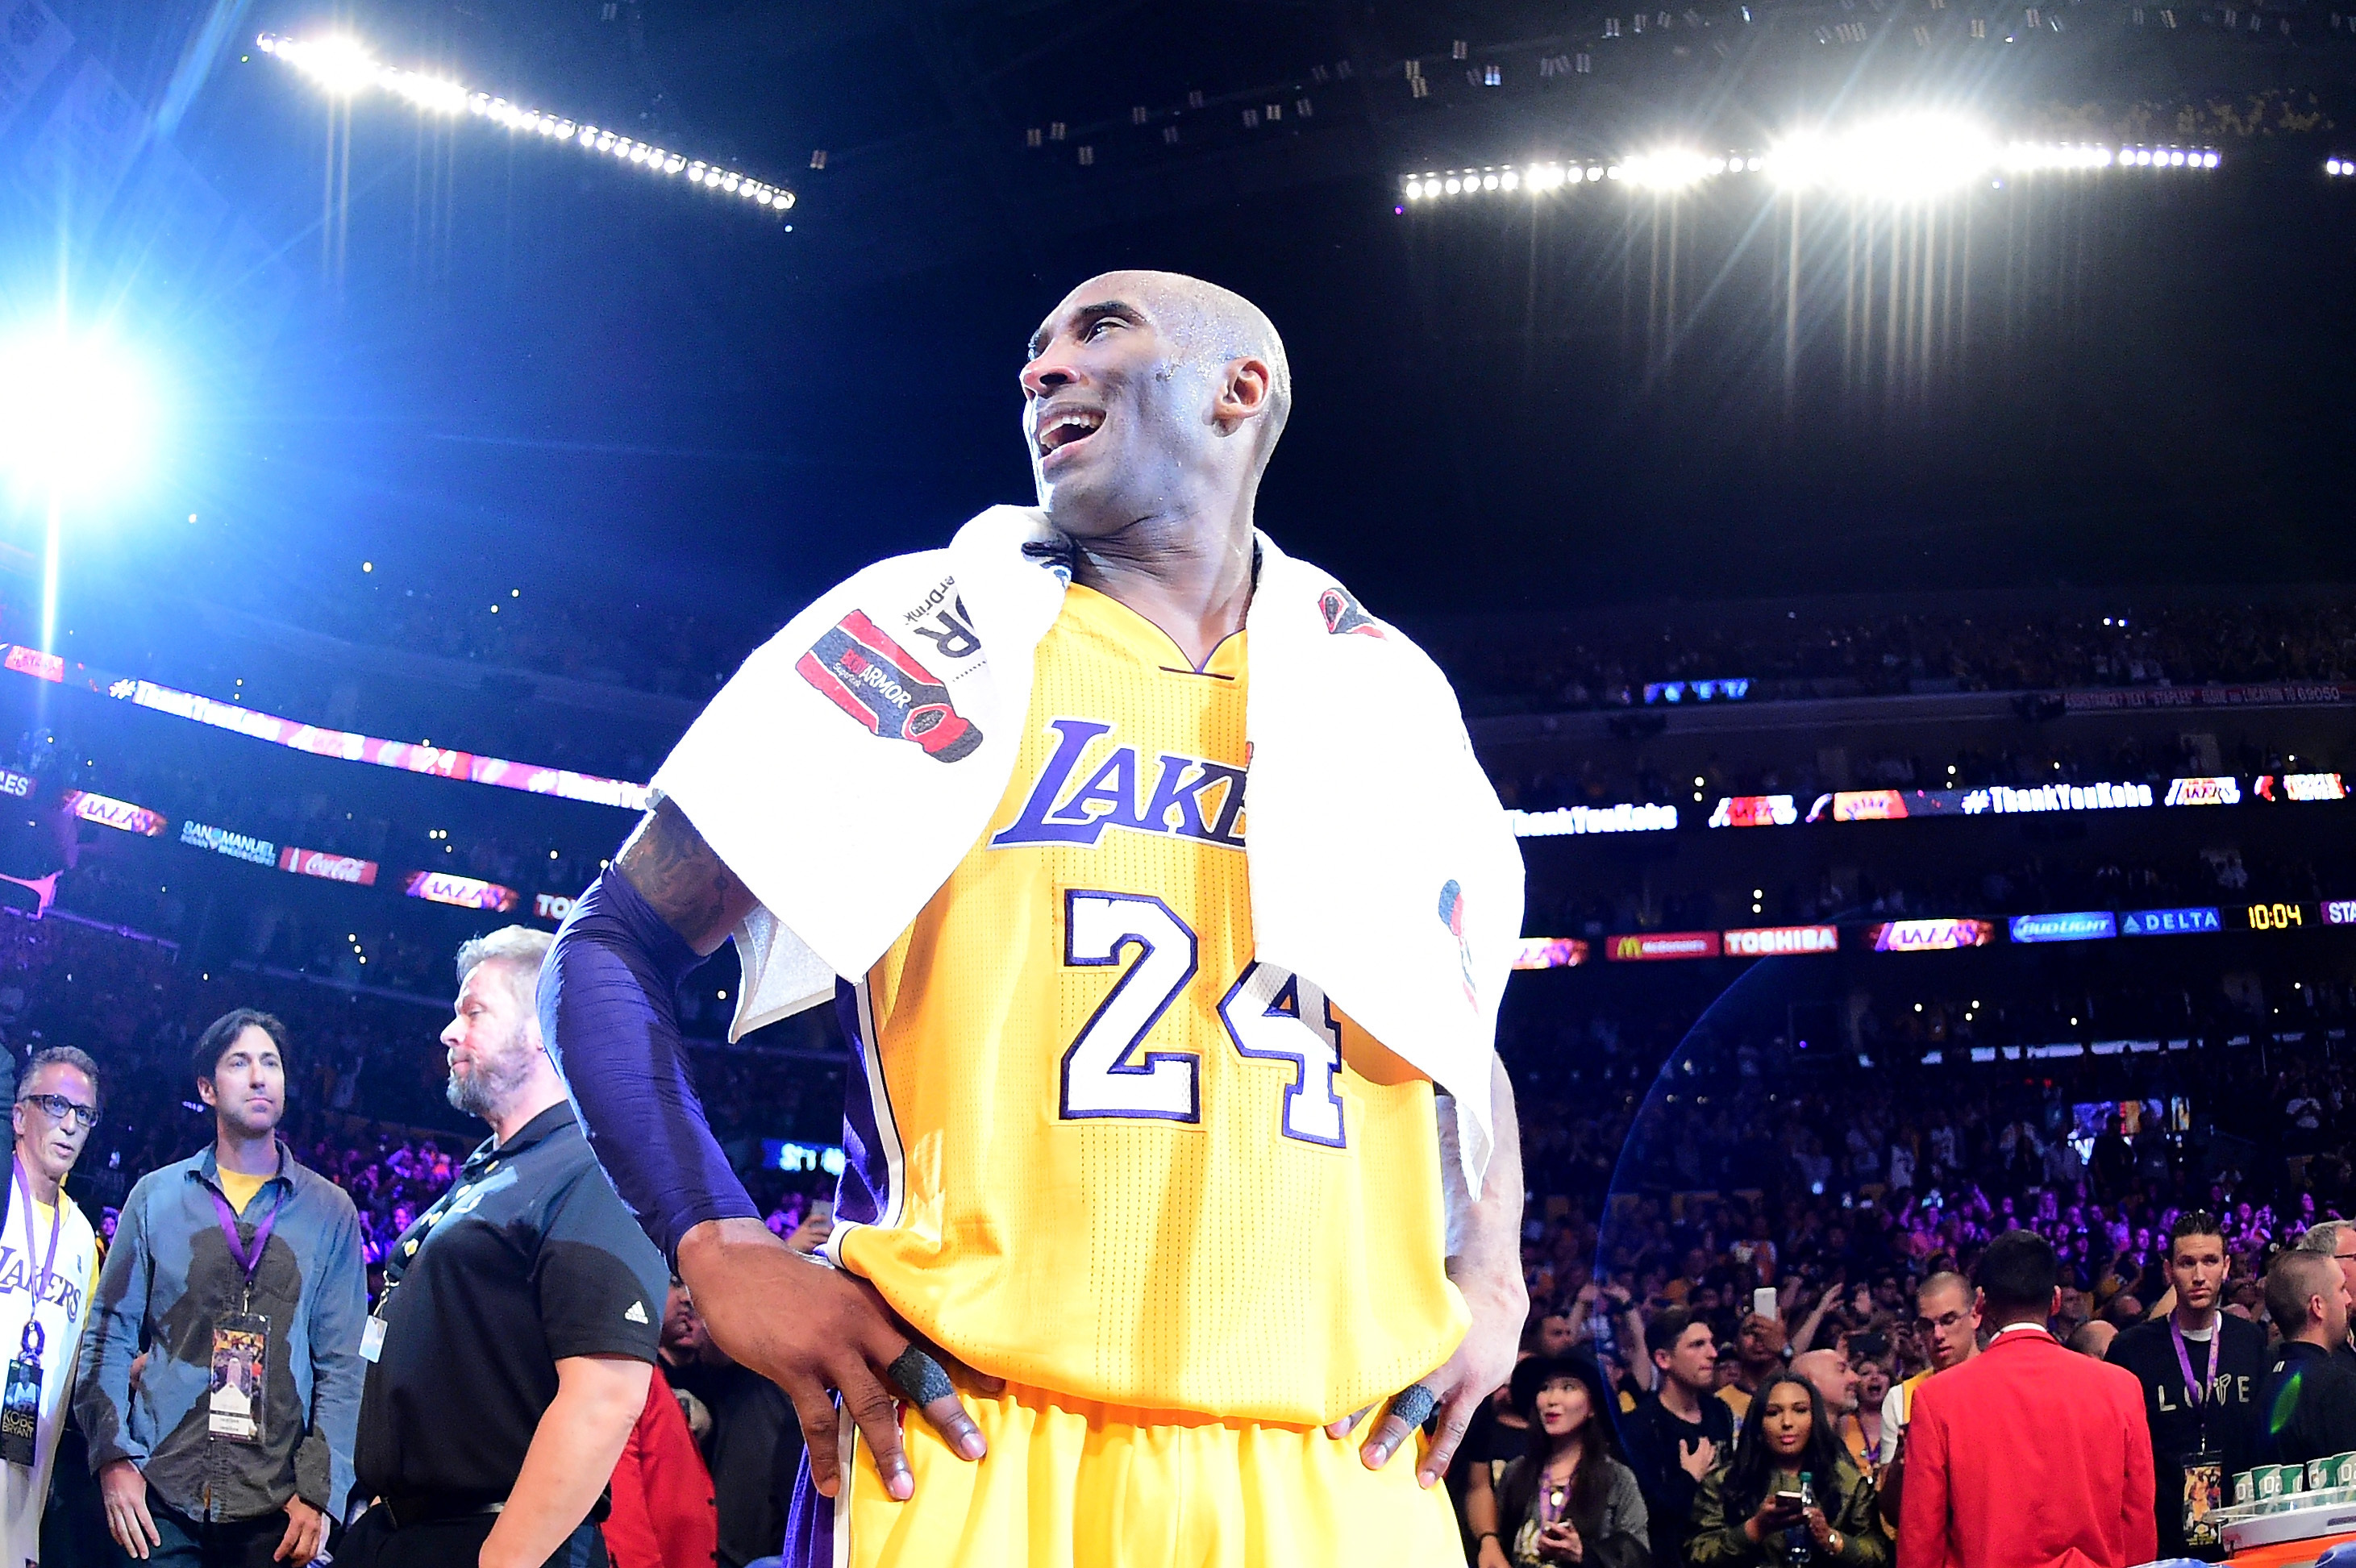 The Lakers' Kobe Bryant stands on the Staples Center court after scoring 60 points in his final NBA game on April 13, 2016. The Lakers defeated the Utah Jazz 101-96.